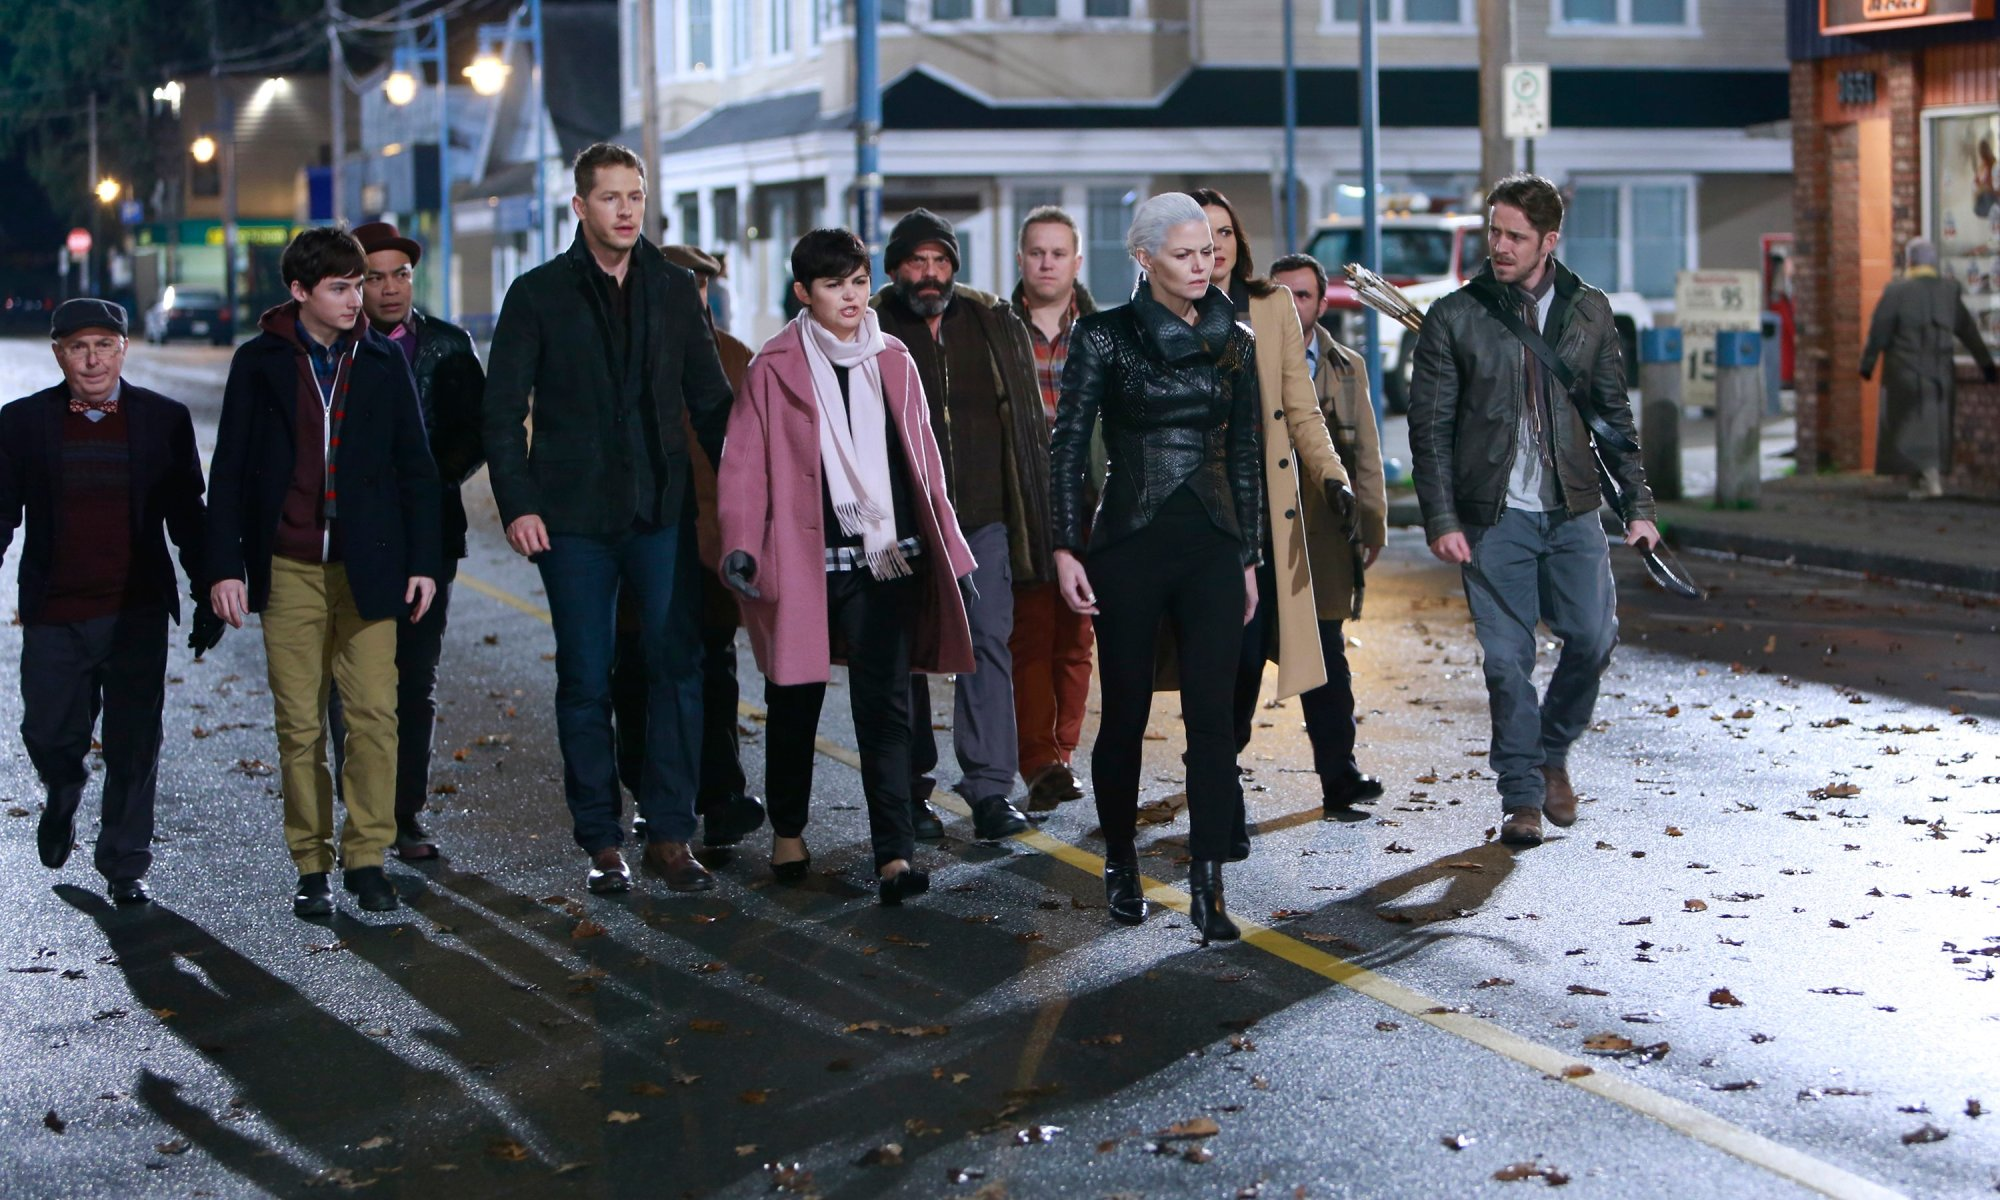 The inhabitants of Storybrooke walk through the town